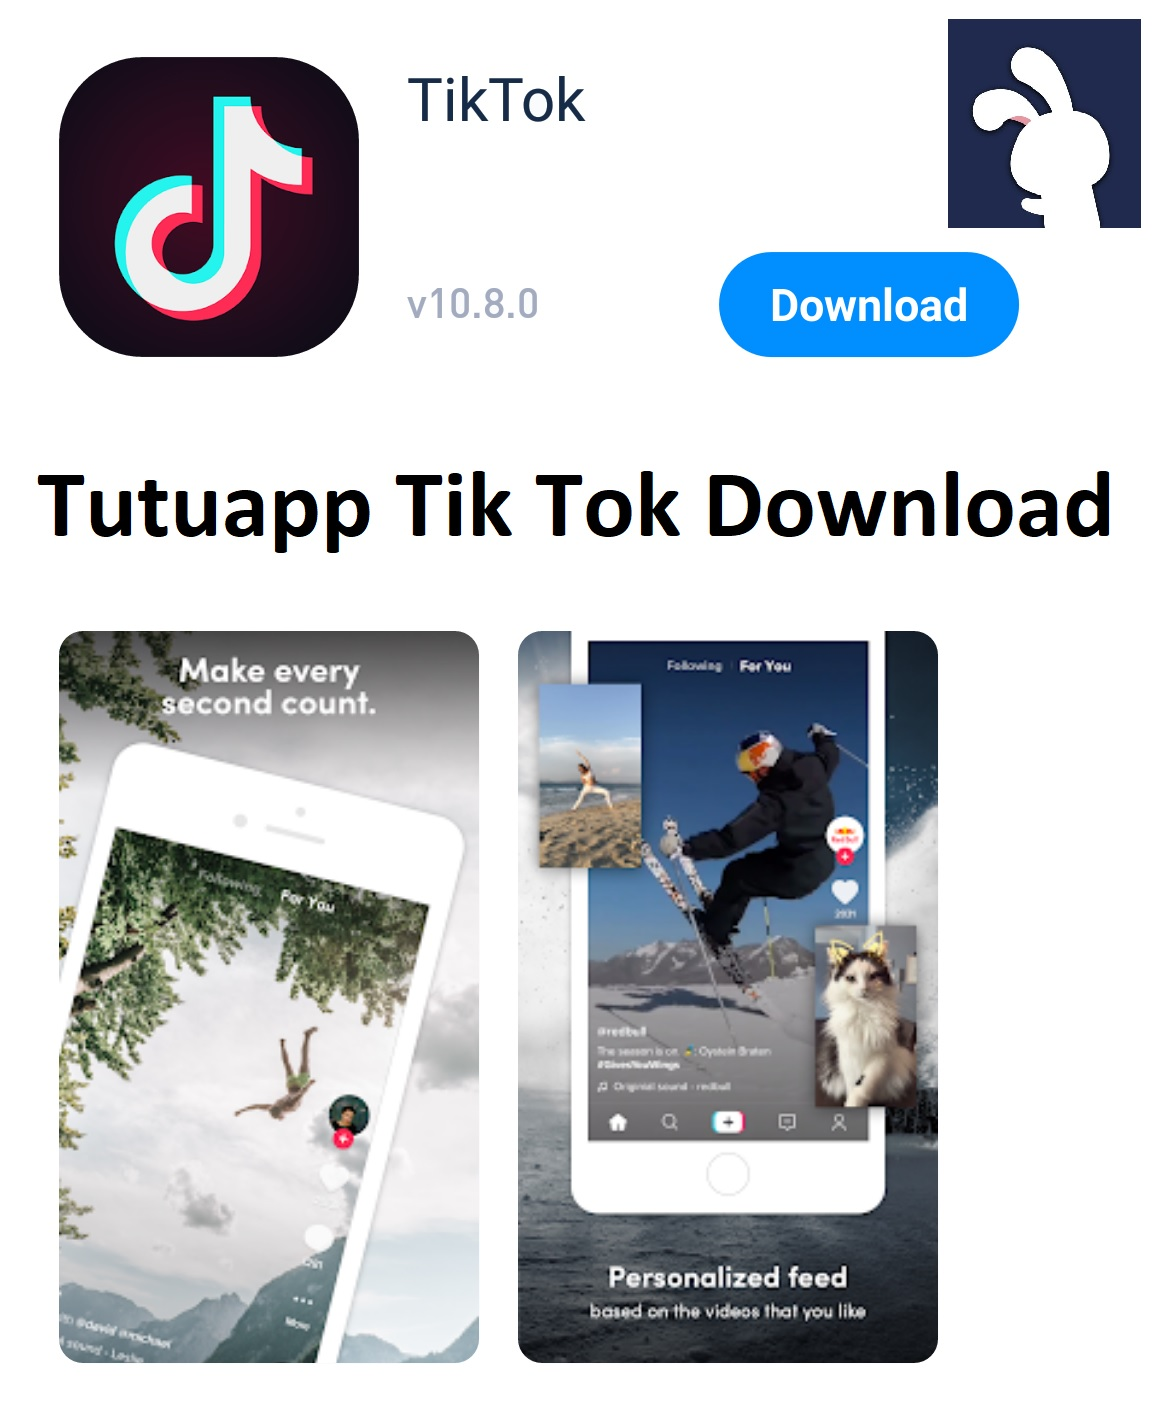 Tutuapp TikTok Musical App download – TutuApp